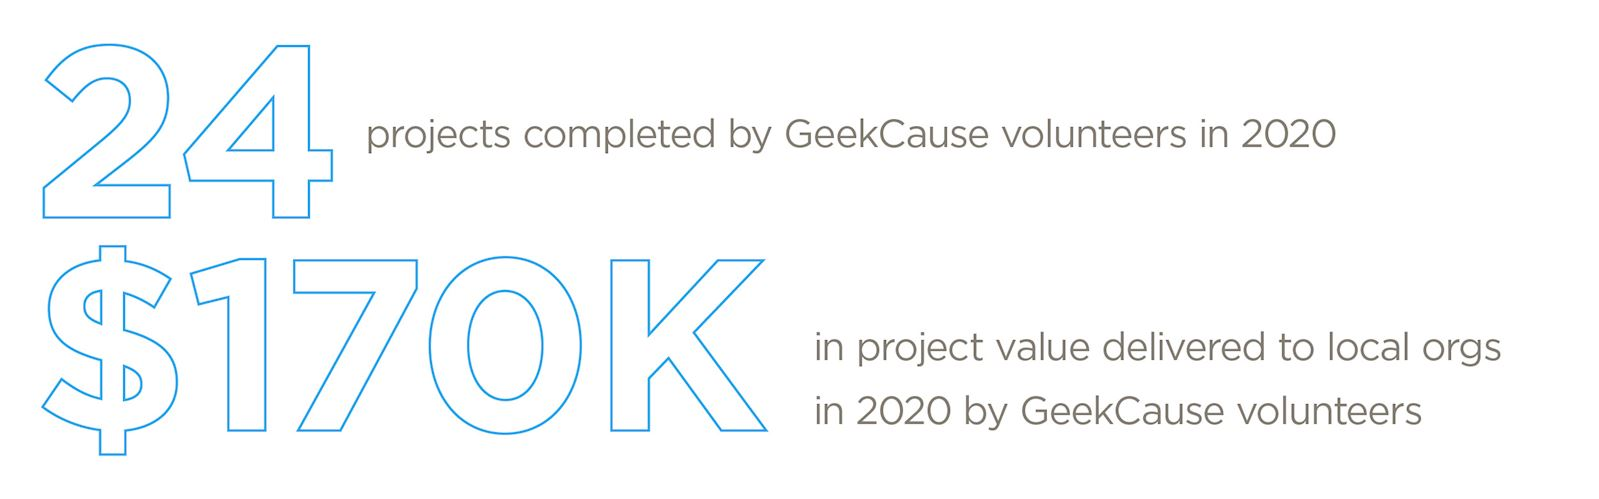 24 projects completed by GeekCause volunteers in 2020. $170K in project value generated for local organizations.